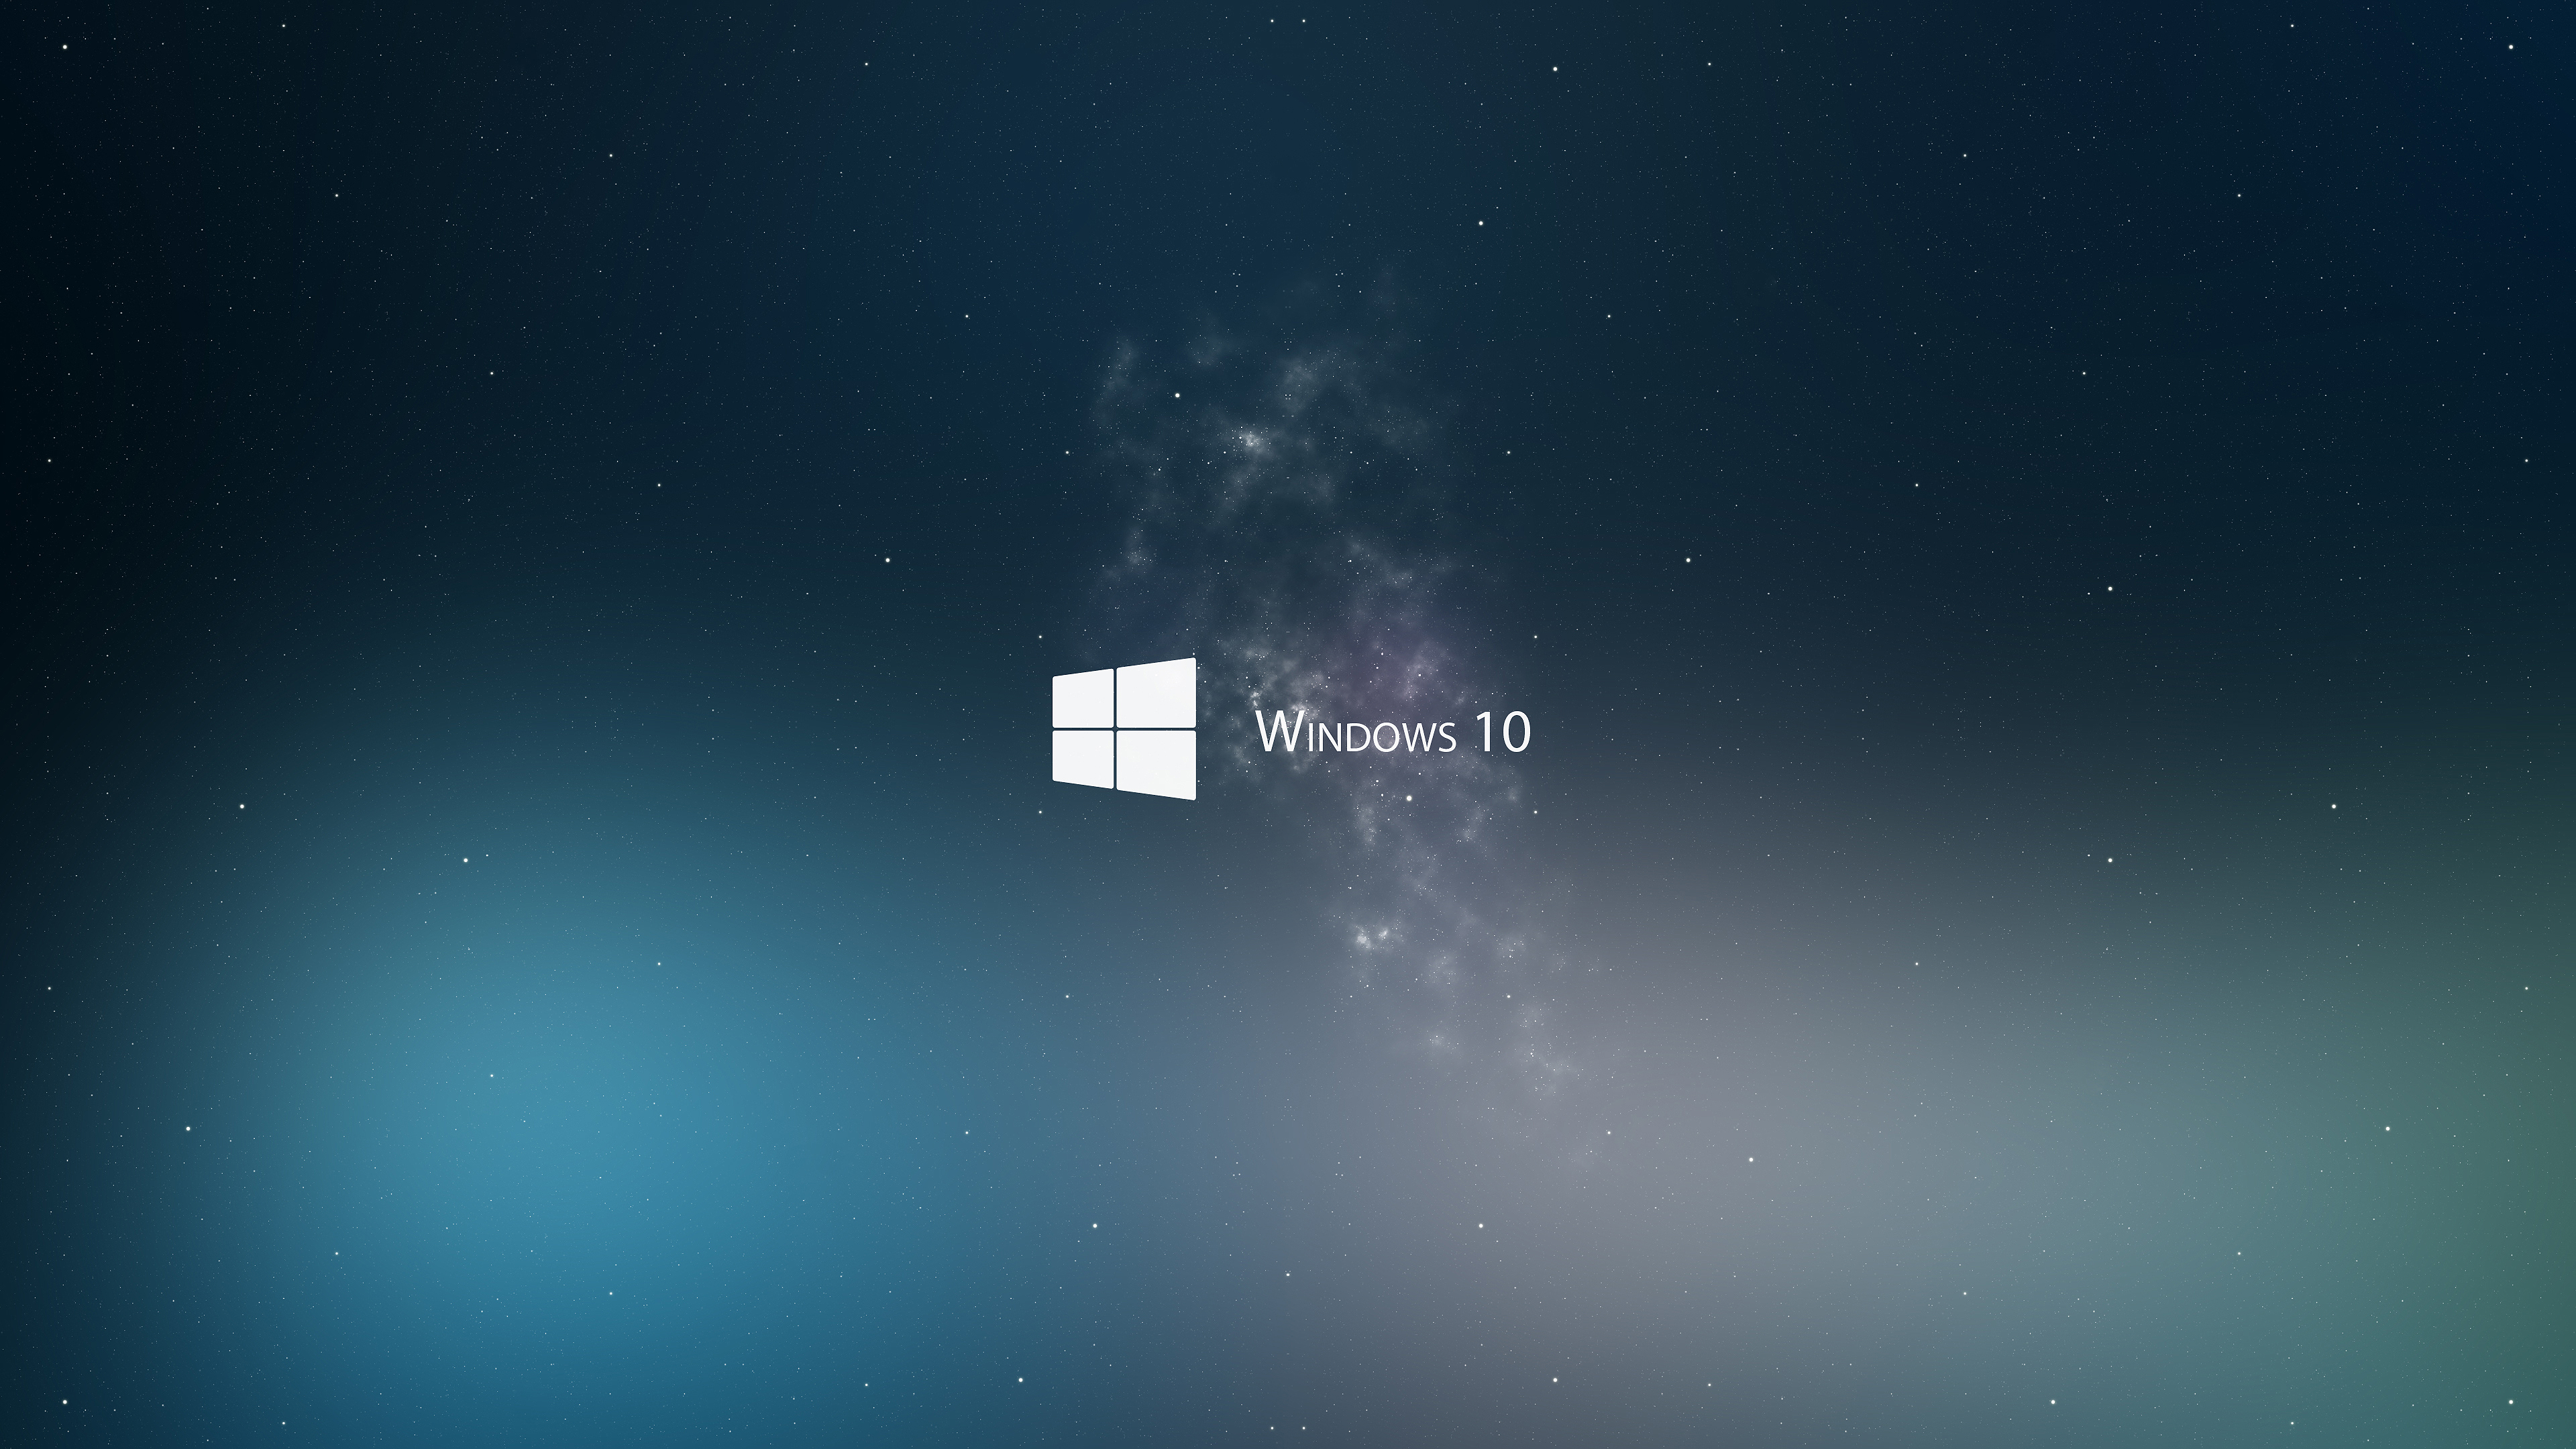 Windows 81 Wallpapers 3840x2160